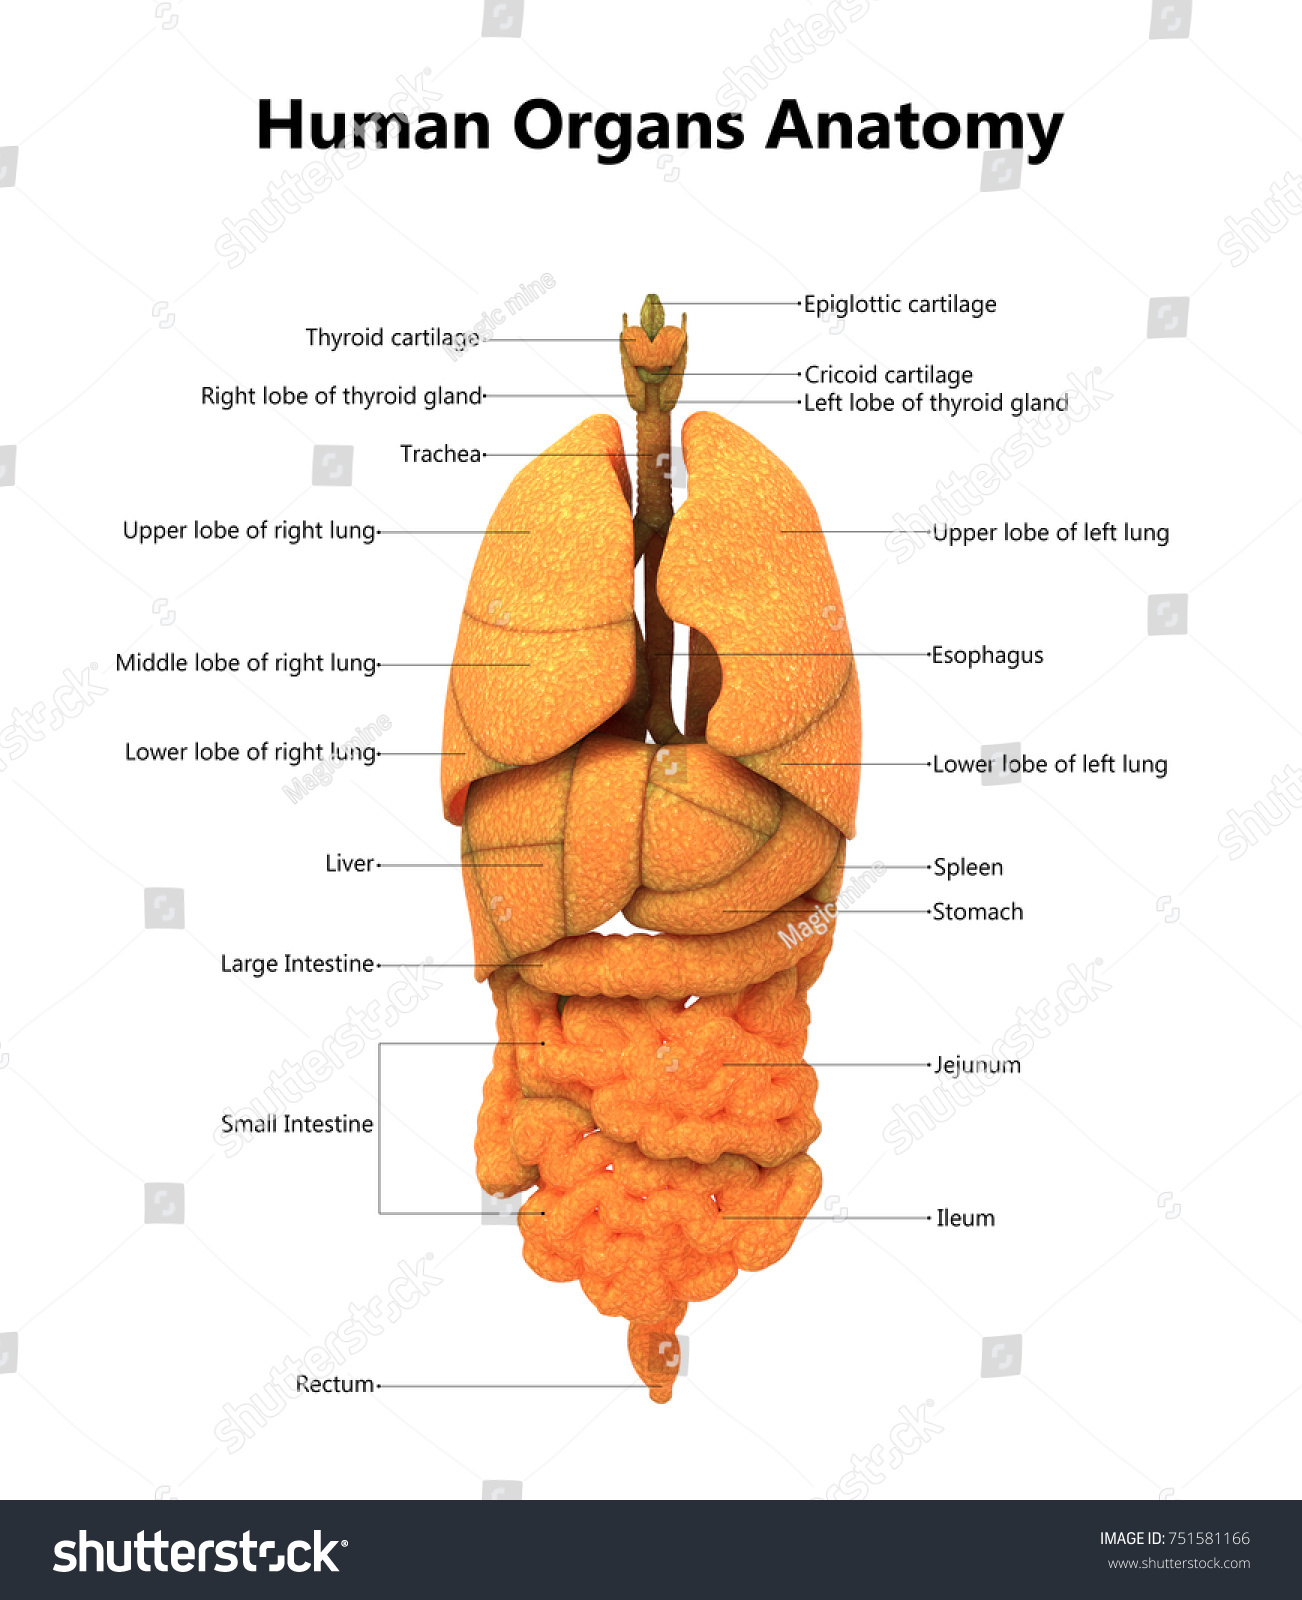 Royalty Free Stock Illustration of Human Body Organs Anatomy ...